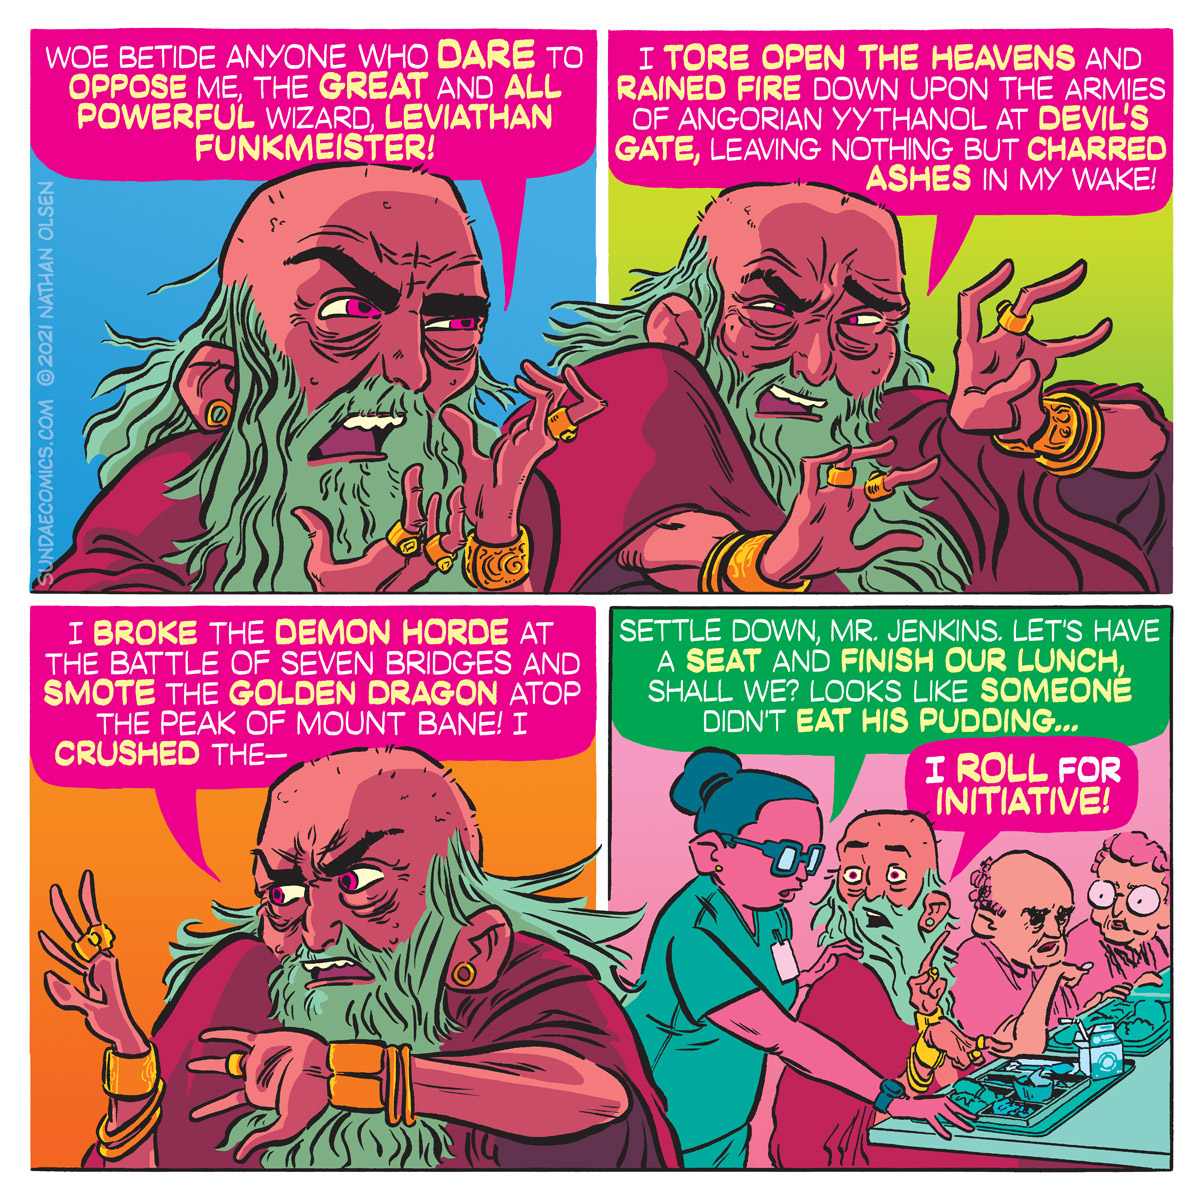 A funny comic in which an old wizard attempts to impress his audience by bragging about his many accomplishments.